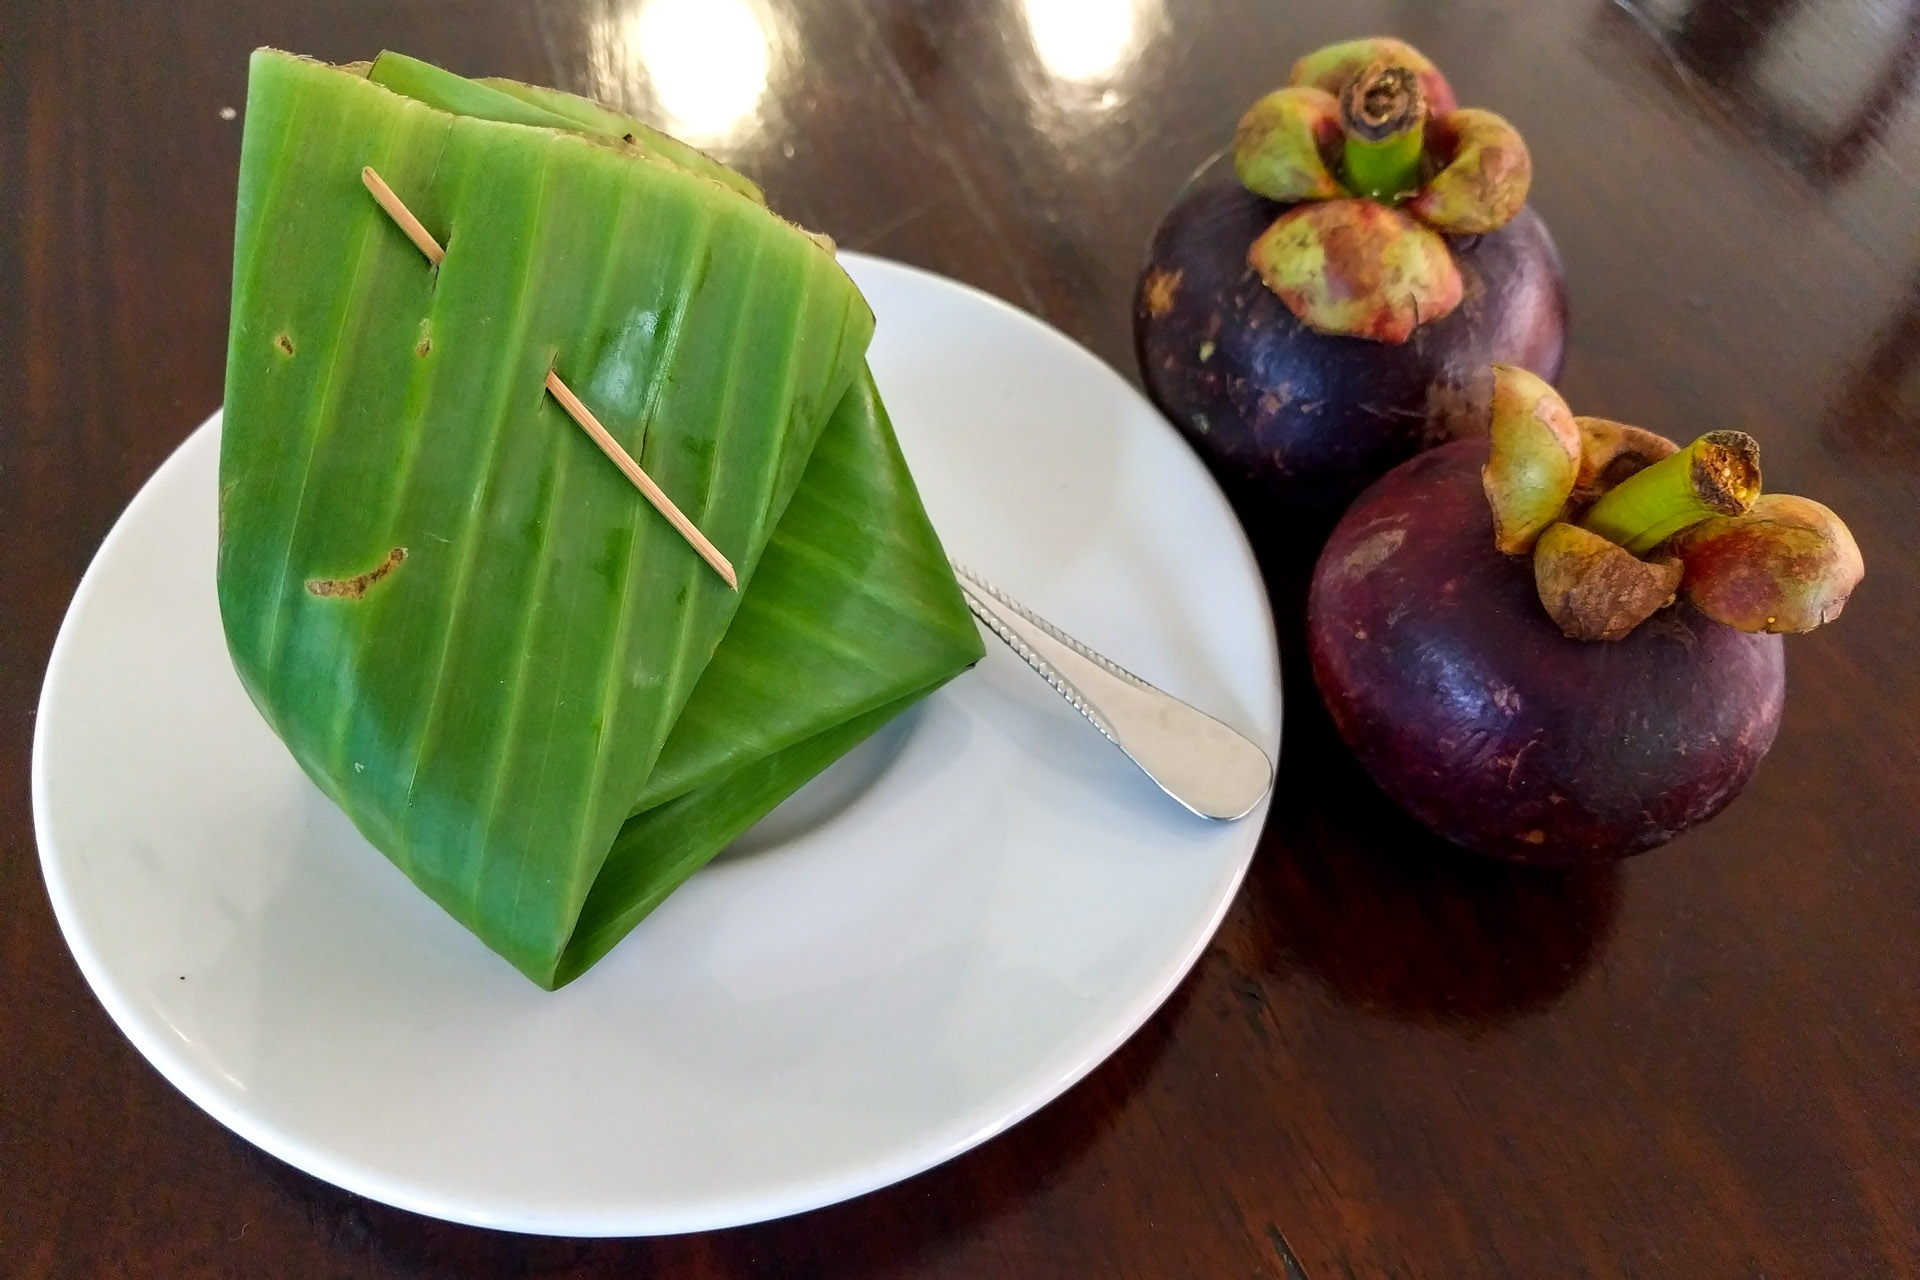 Banana sticky rice & mangosteens